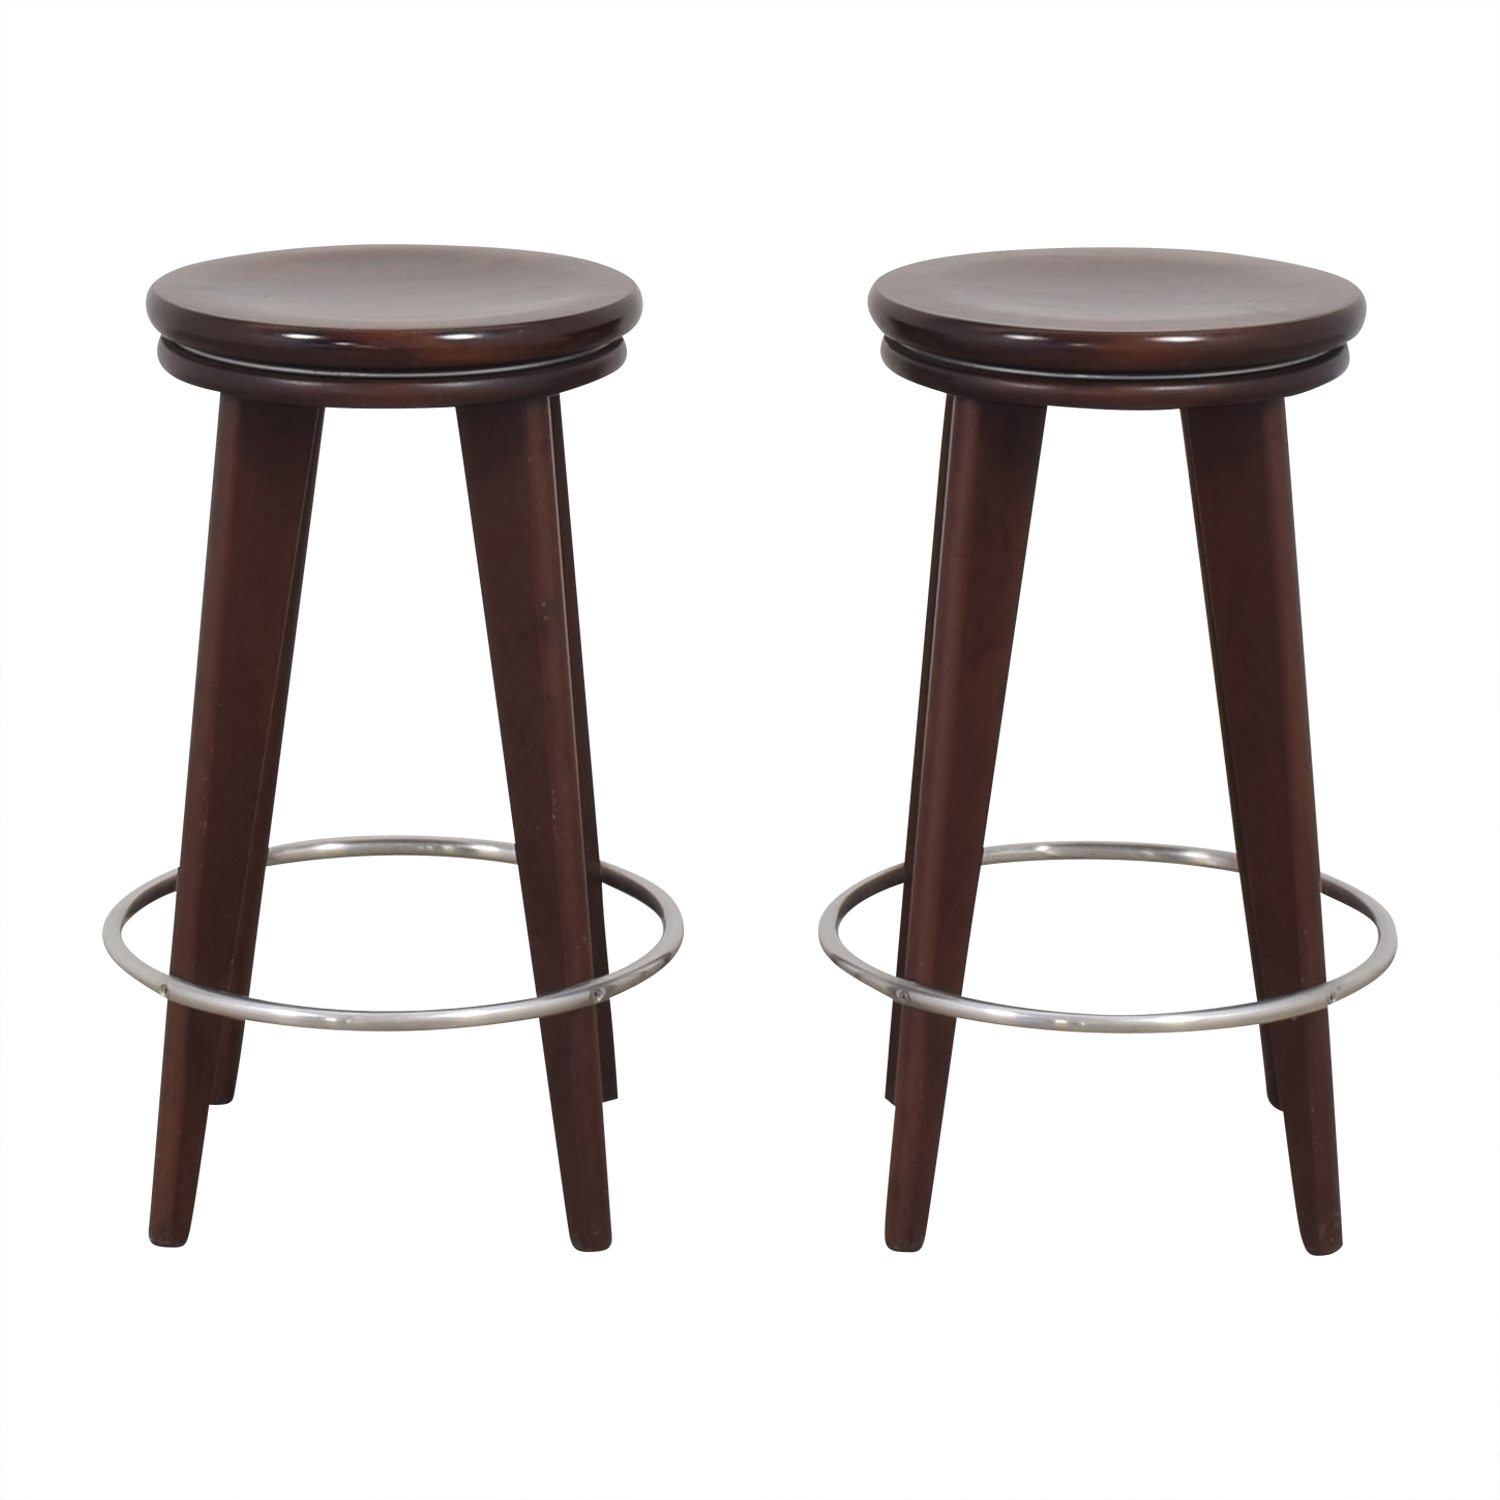 Dennis Miller Altura Top Counter Stools sale